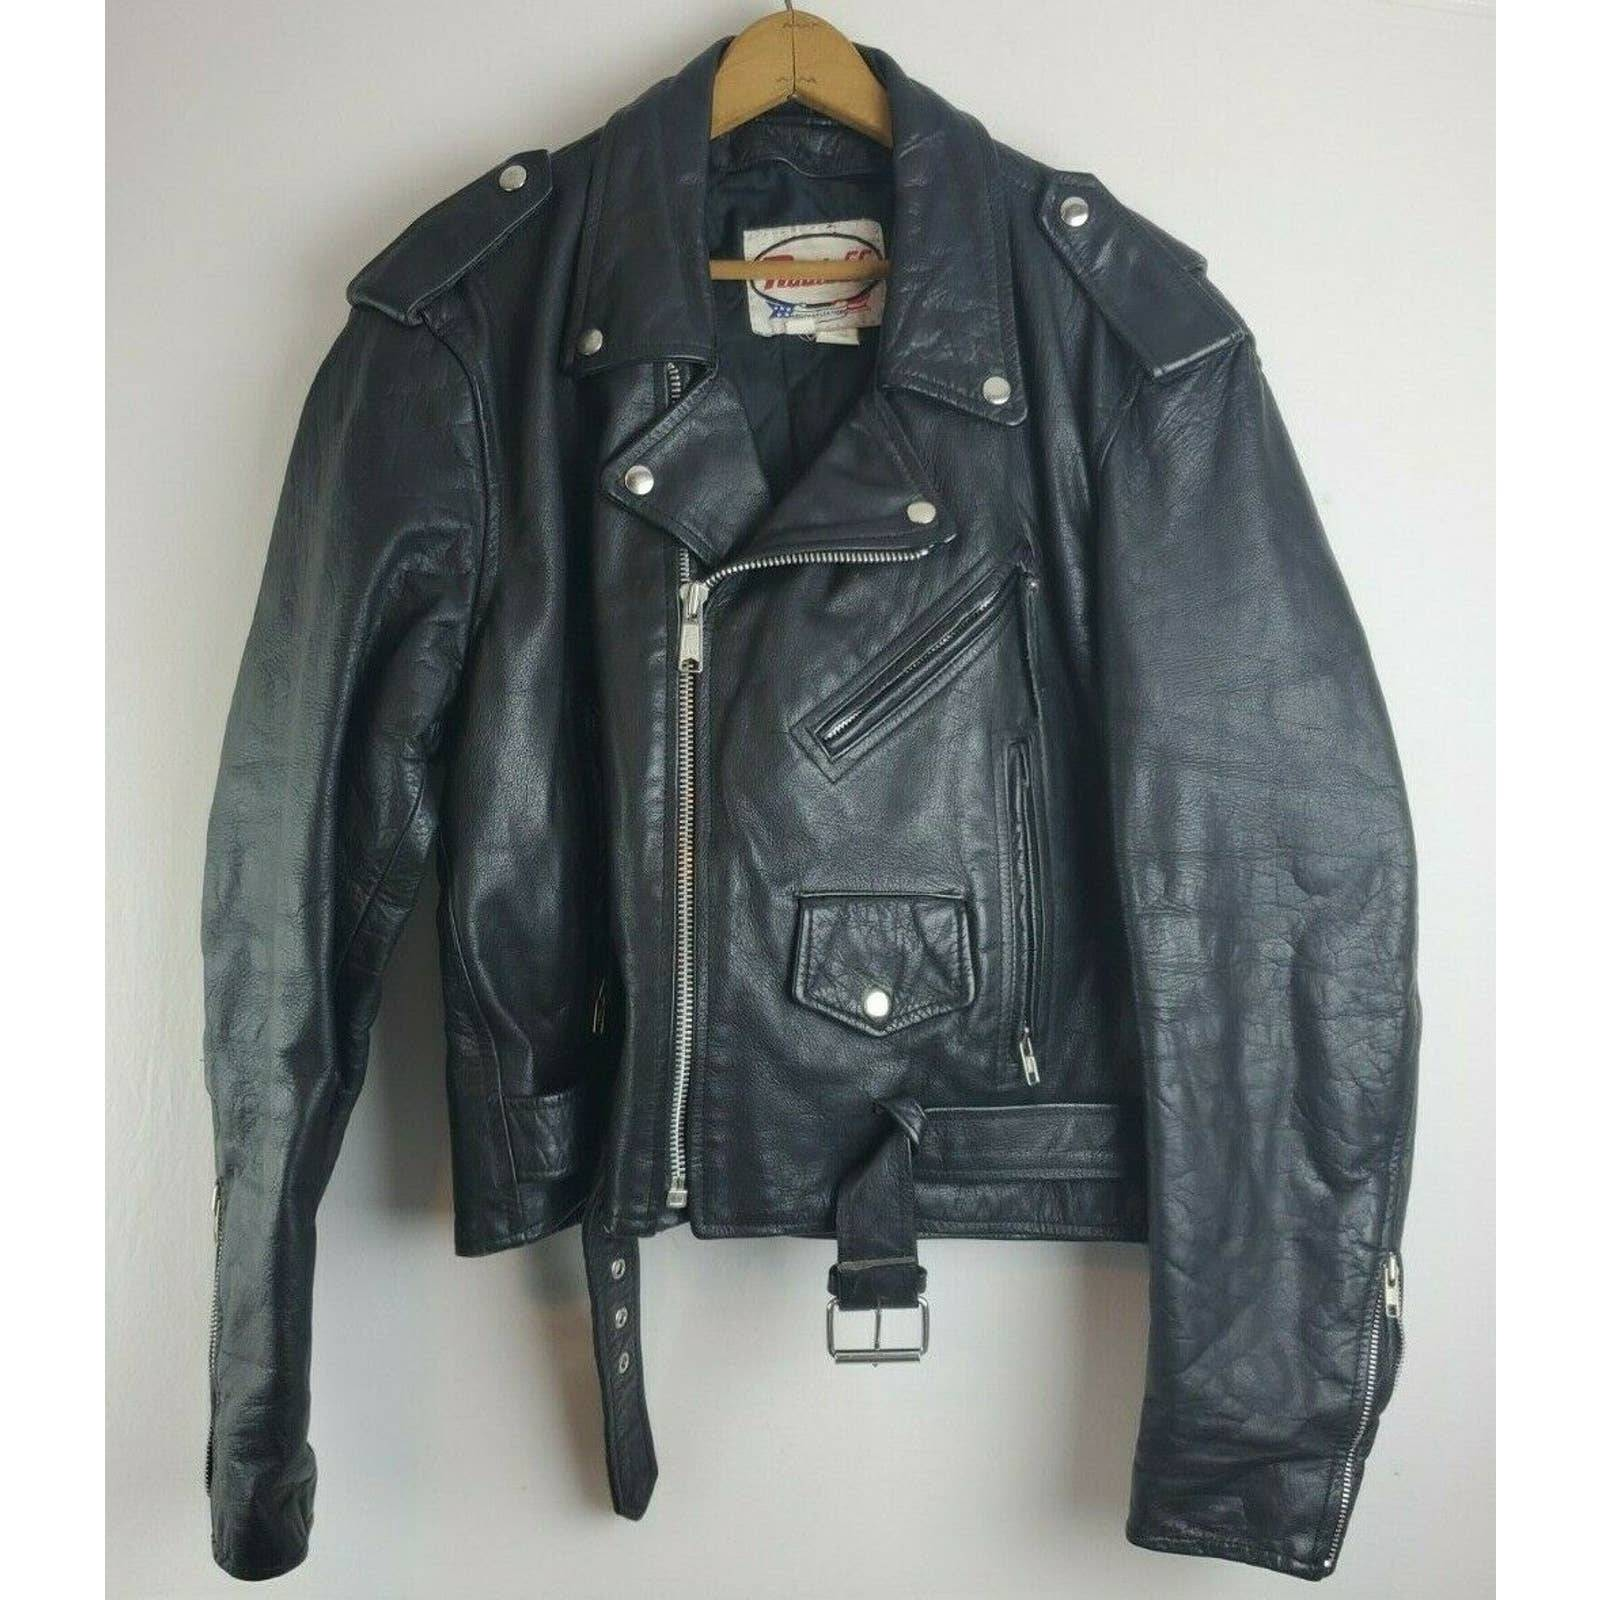 Route 66 leather Motorcycle Jacket